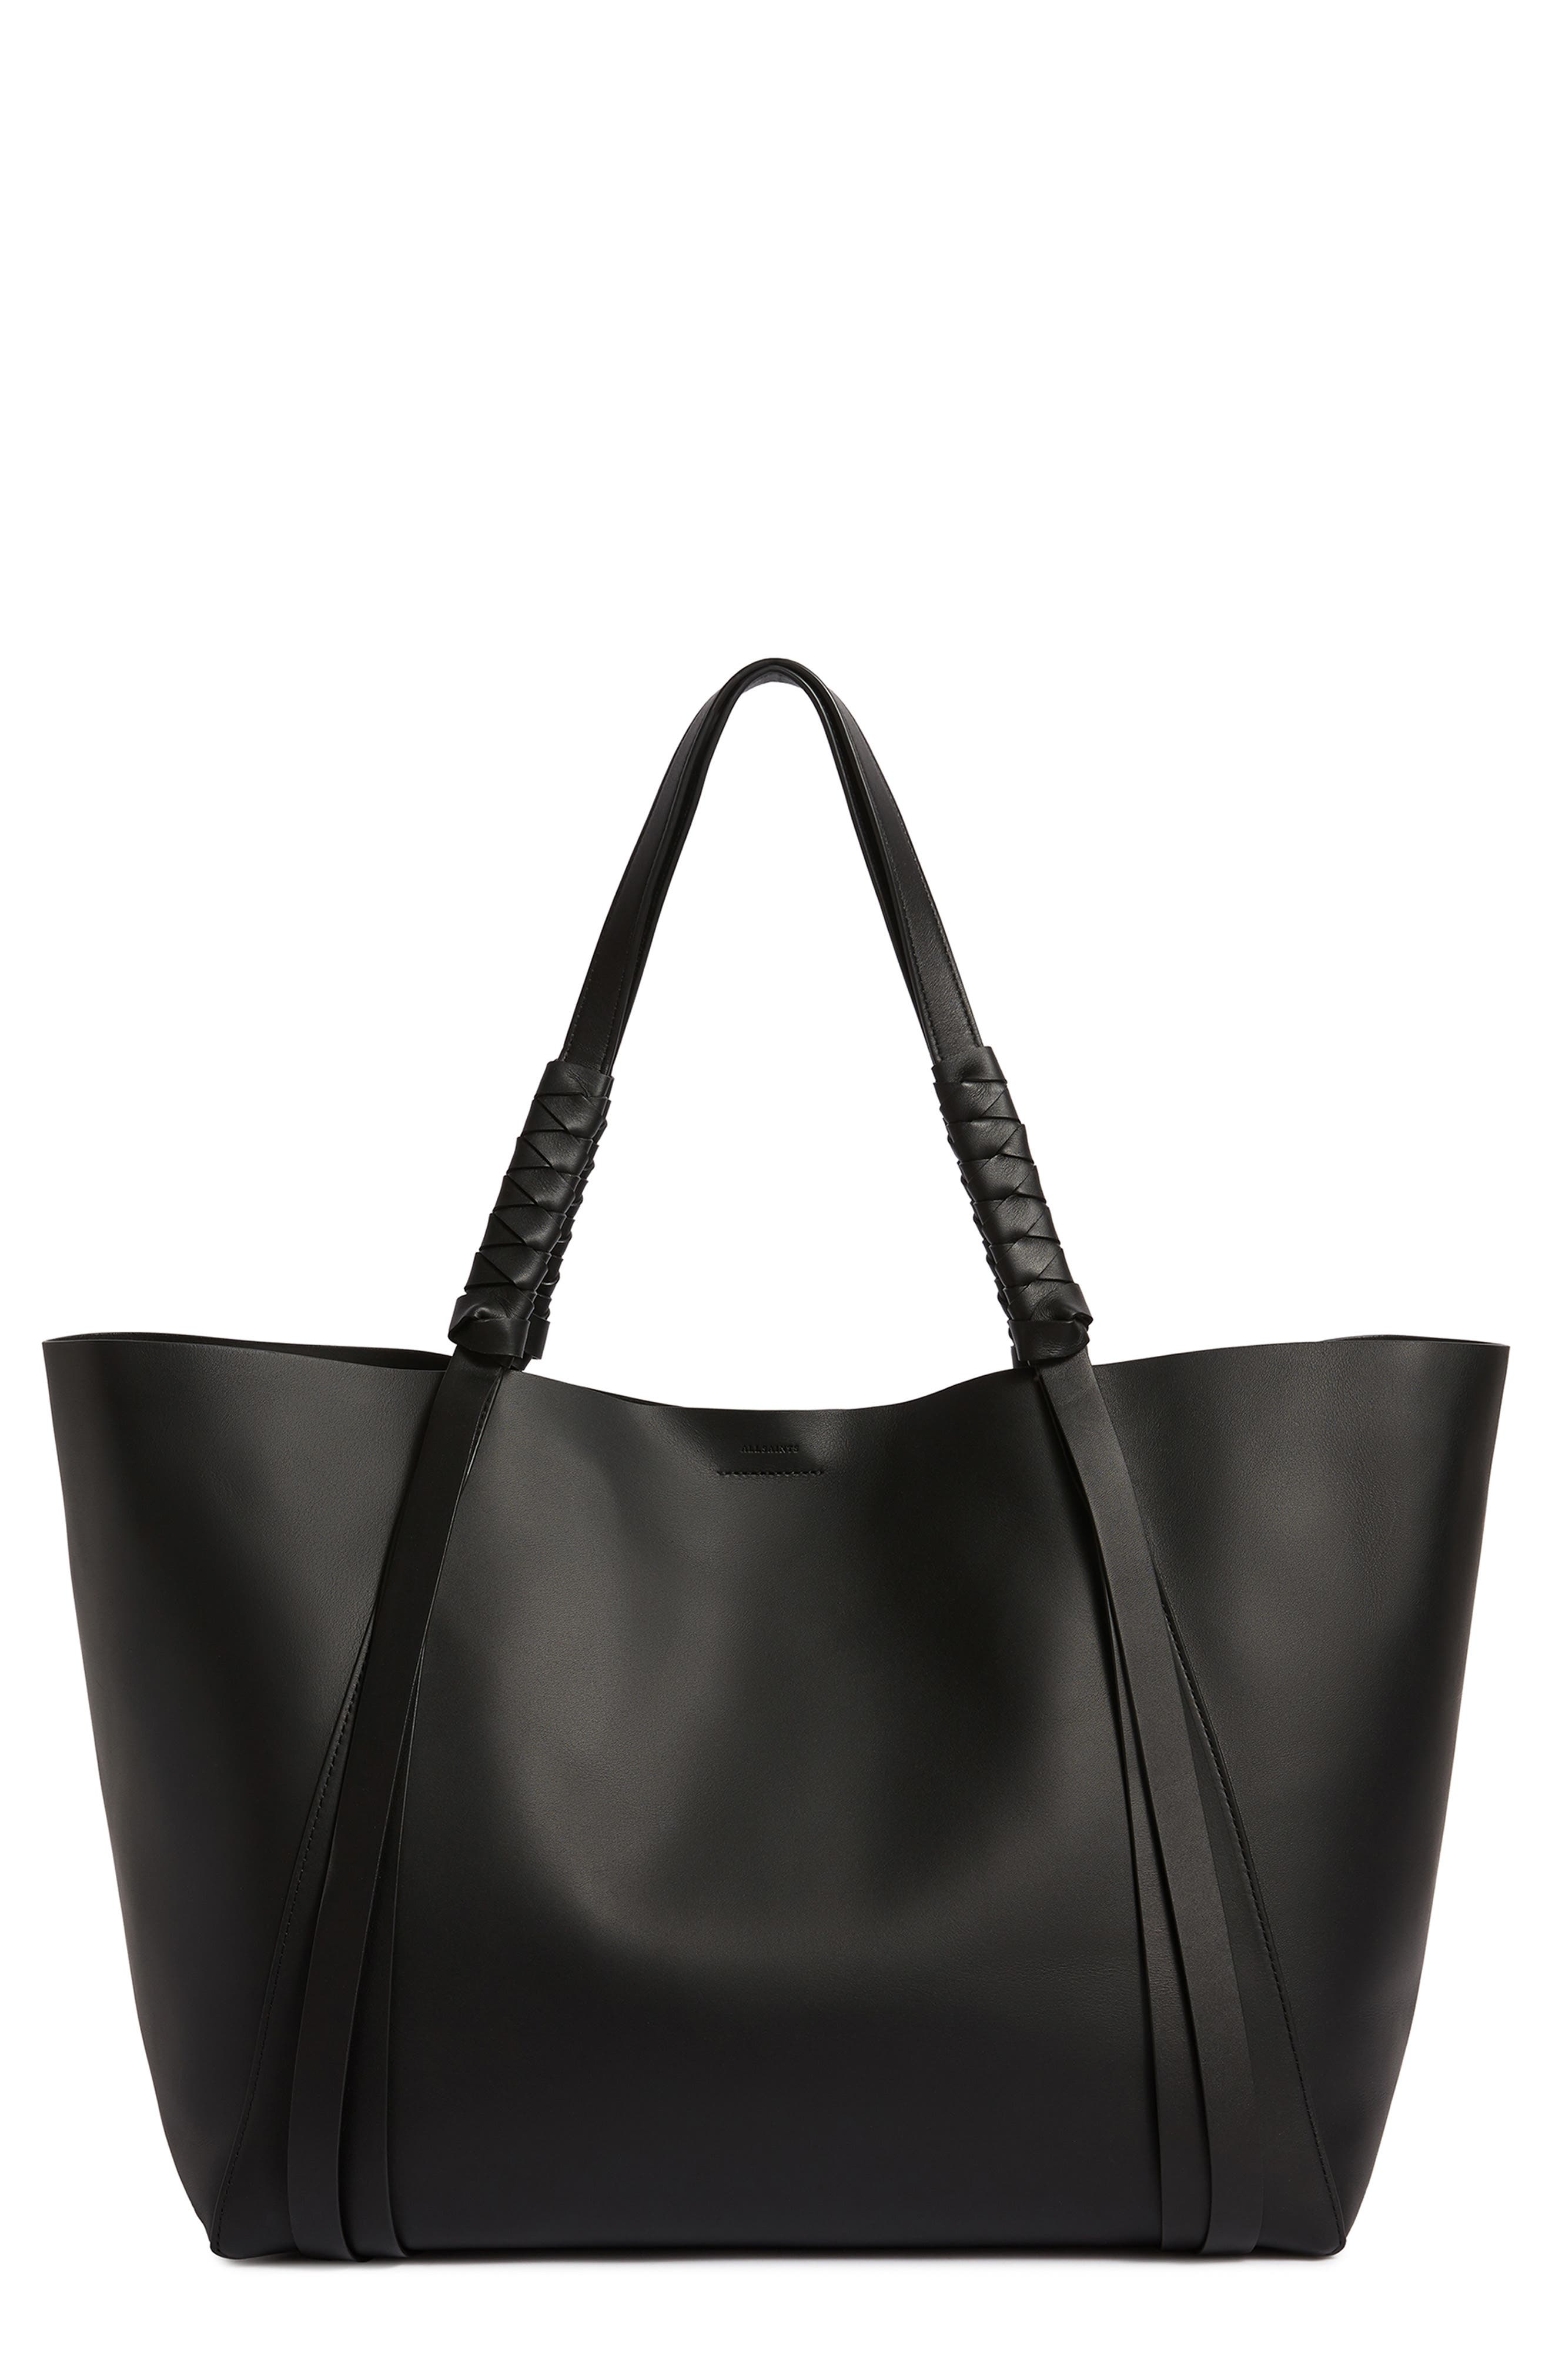 Voltaire Leather Tote,                             Main thumbnail 1, color,                             BLACK